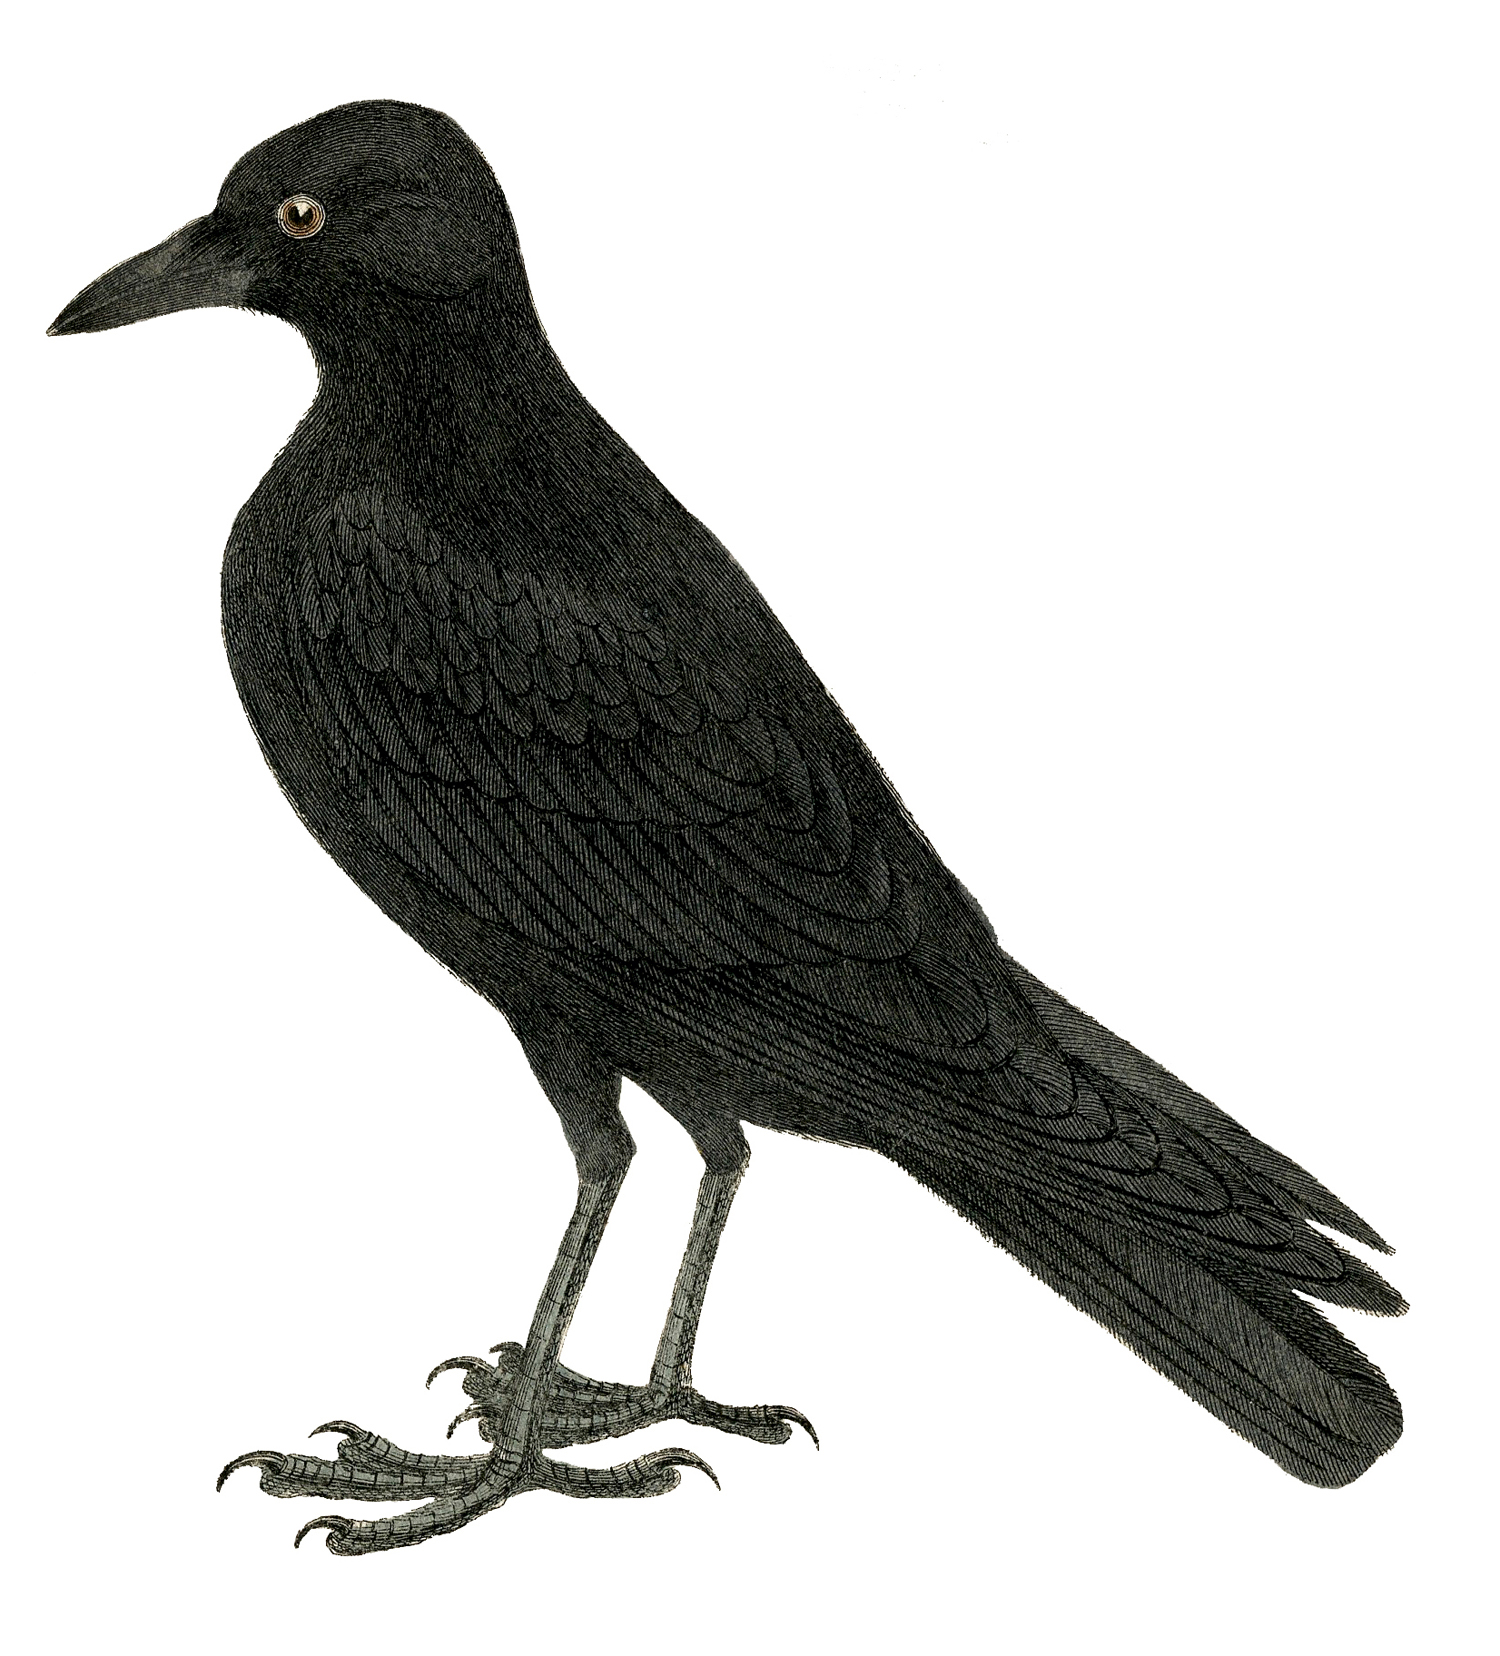 Halloween Crow Image Or Raven   The Graphics Fairy